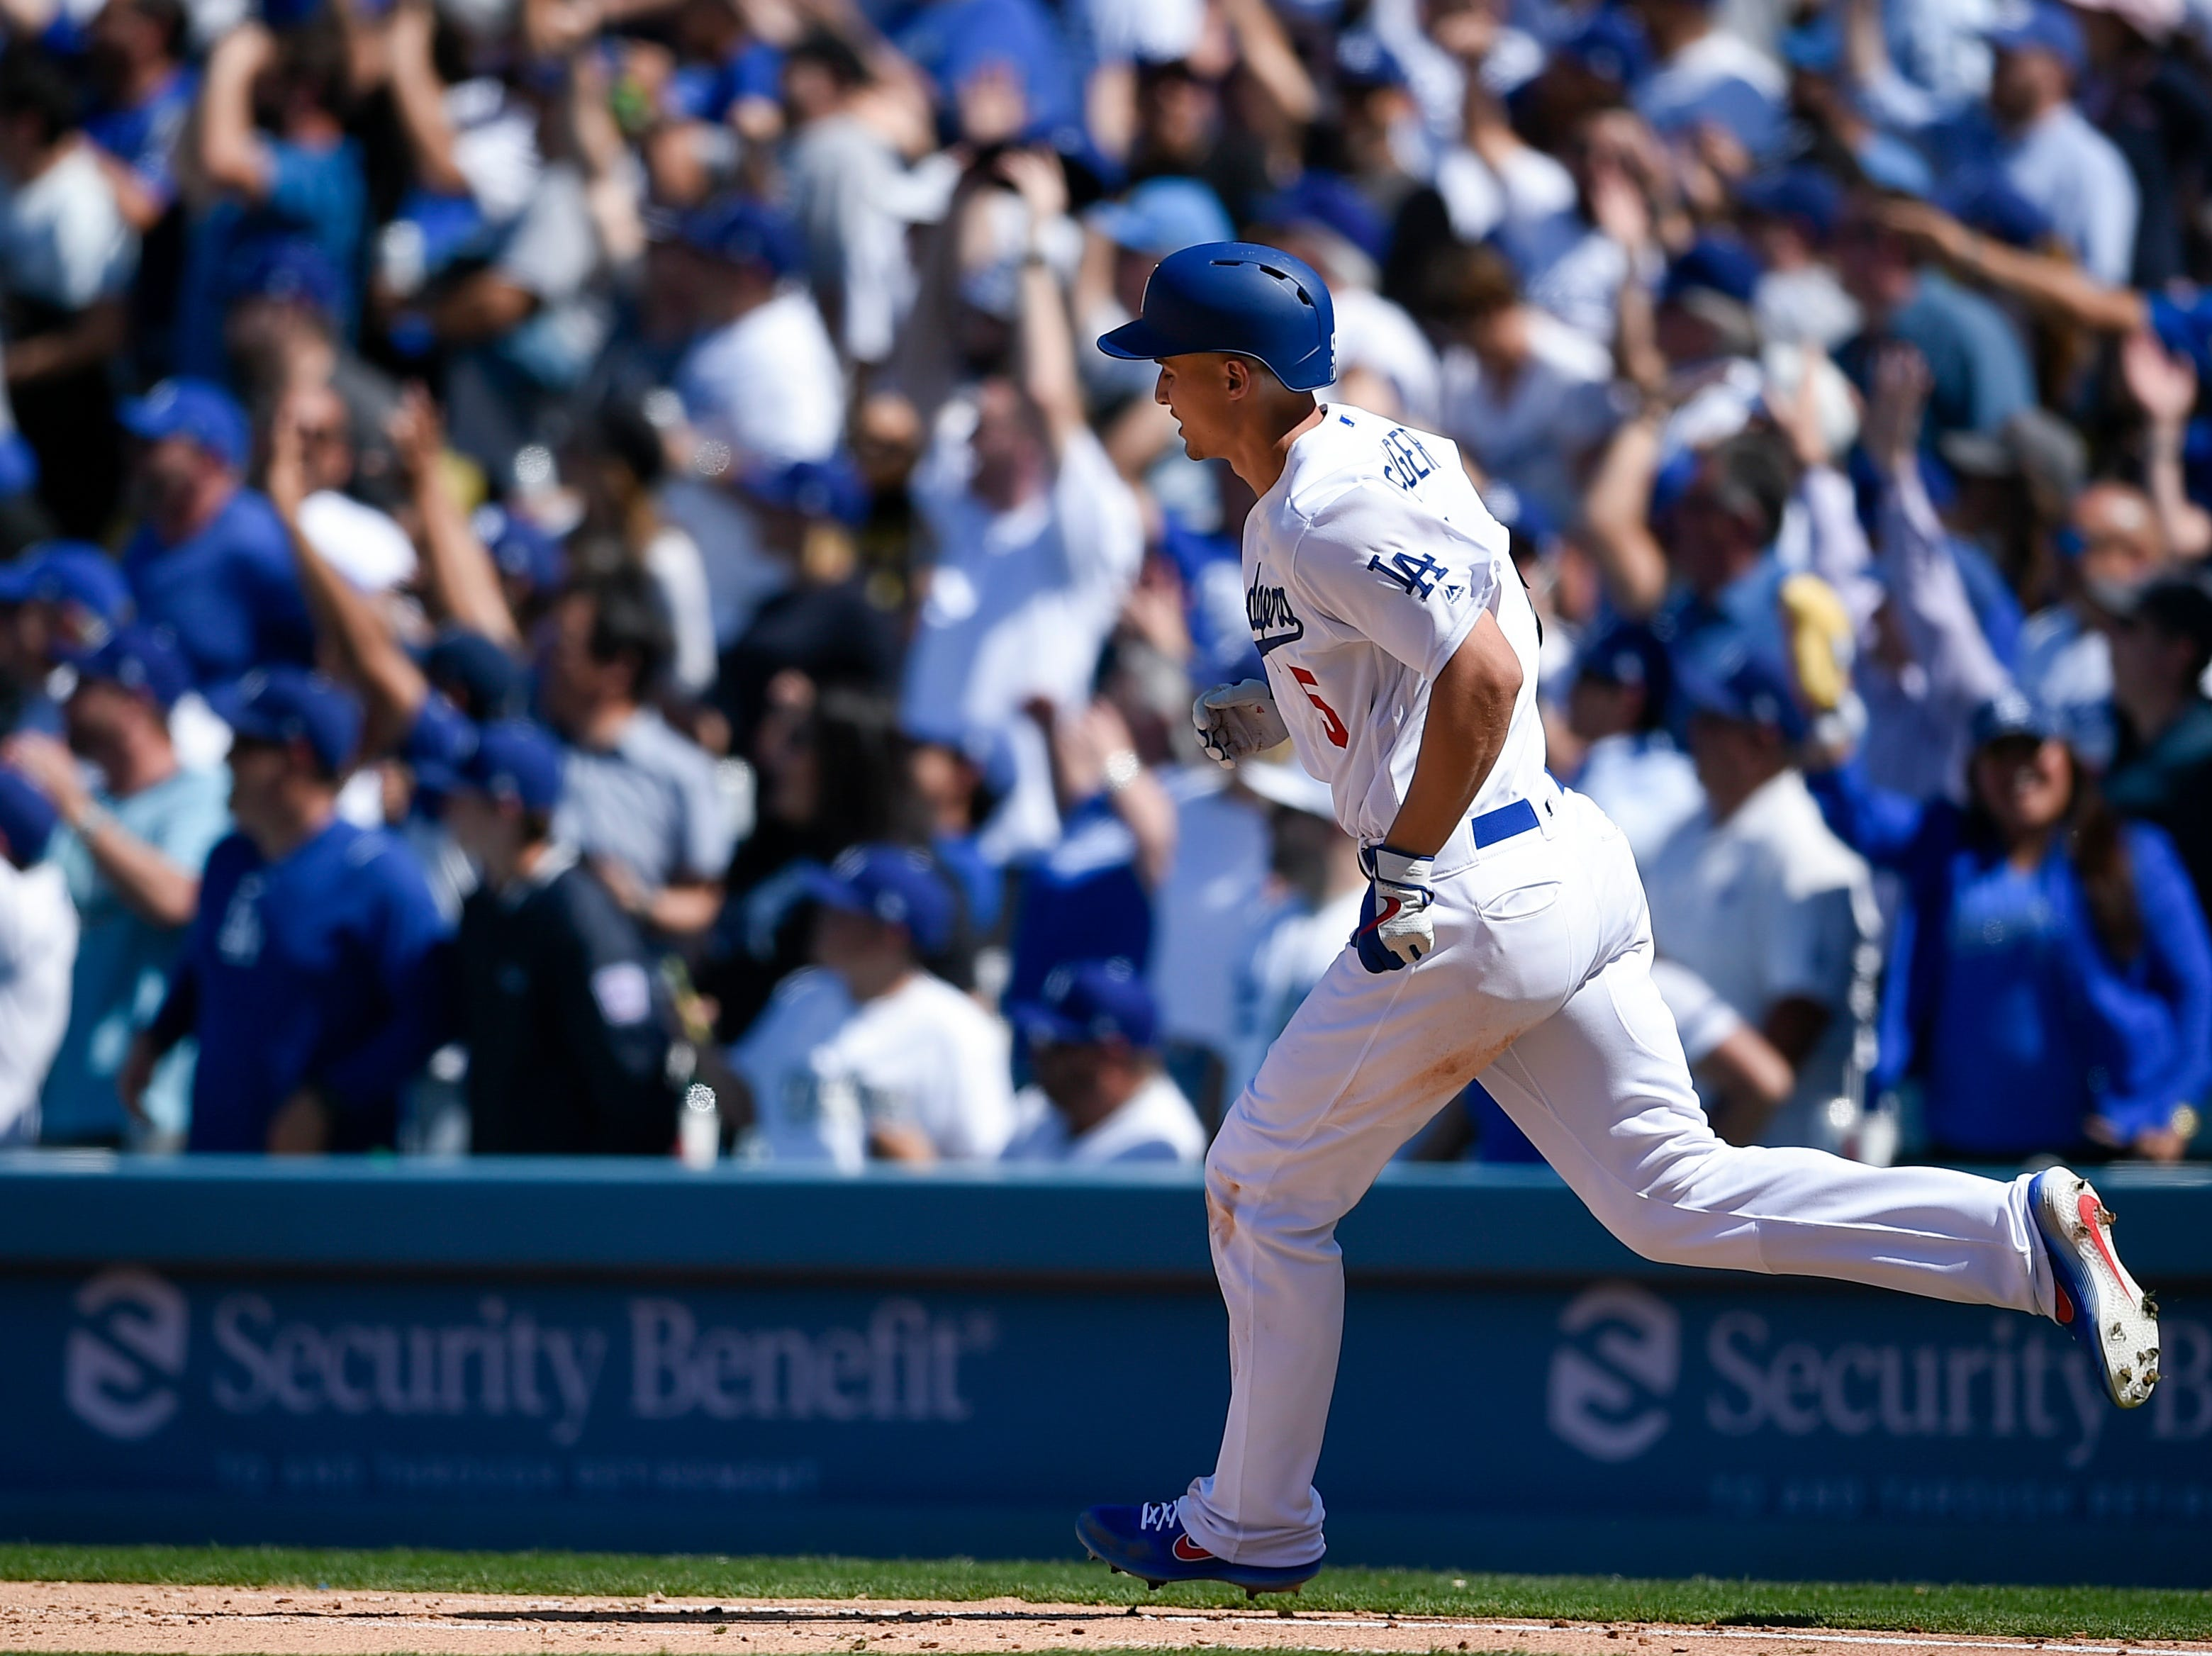 Mar 28, 2019; Los Angeles, CA, USA; Los Angeles Dodgers shortstop Corey Seager (5) rounds the bases after a home run during the fourth inning against the Arizona Diamondbacks at Dodger Stadium. Mandatory Credit: Kelvin Kuo-USA TODAY Sports